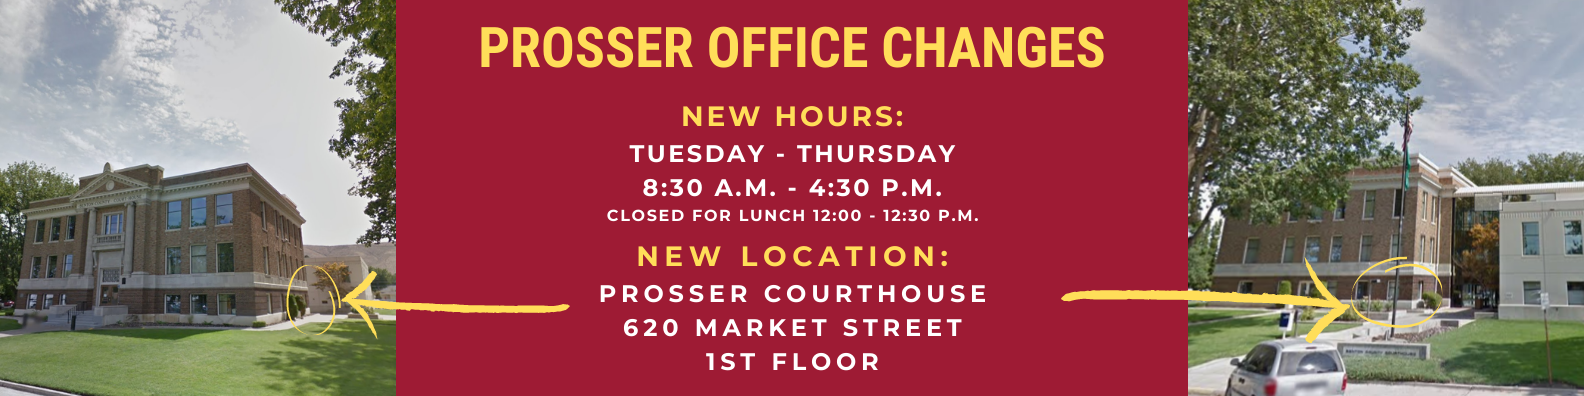 Prosser office changes, new hours: Tuesday - Thursday, 8:30 a.m. - 4:30 p.m. (closed for lunch 12:00 - 12:30 p.m.); New location: Prosser Courthouse, 620 Market St., Prosser, WA, 1st Floor